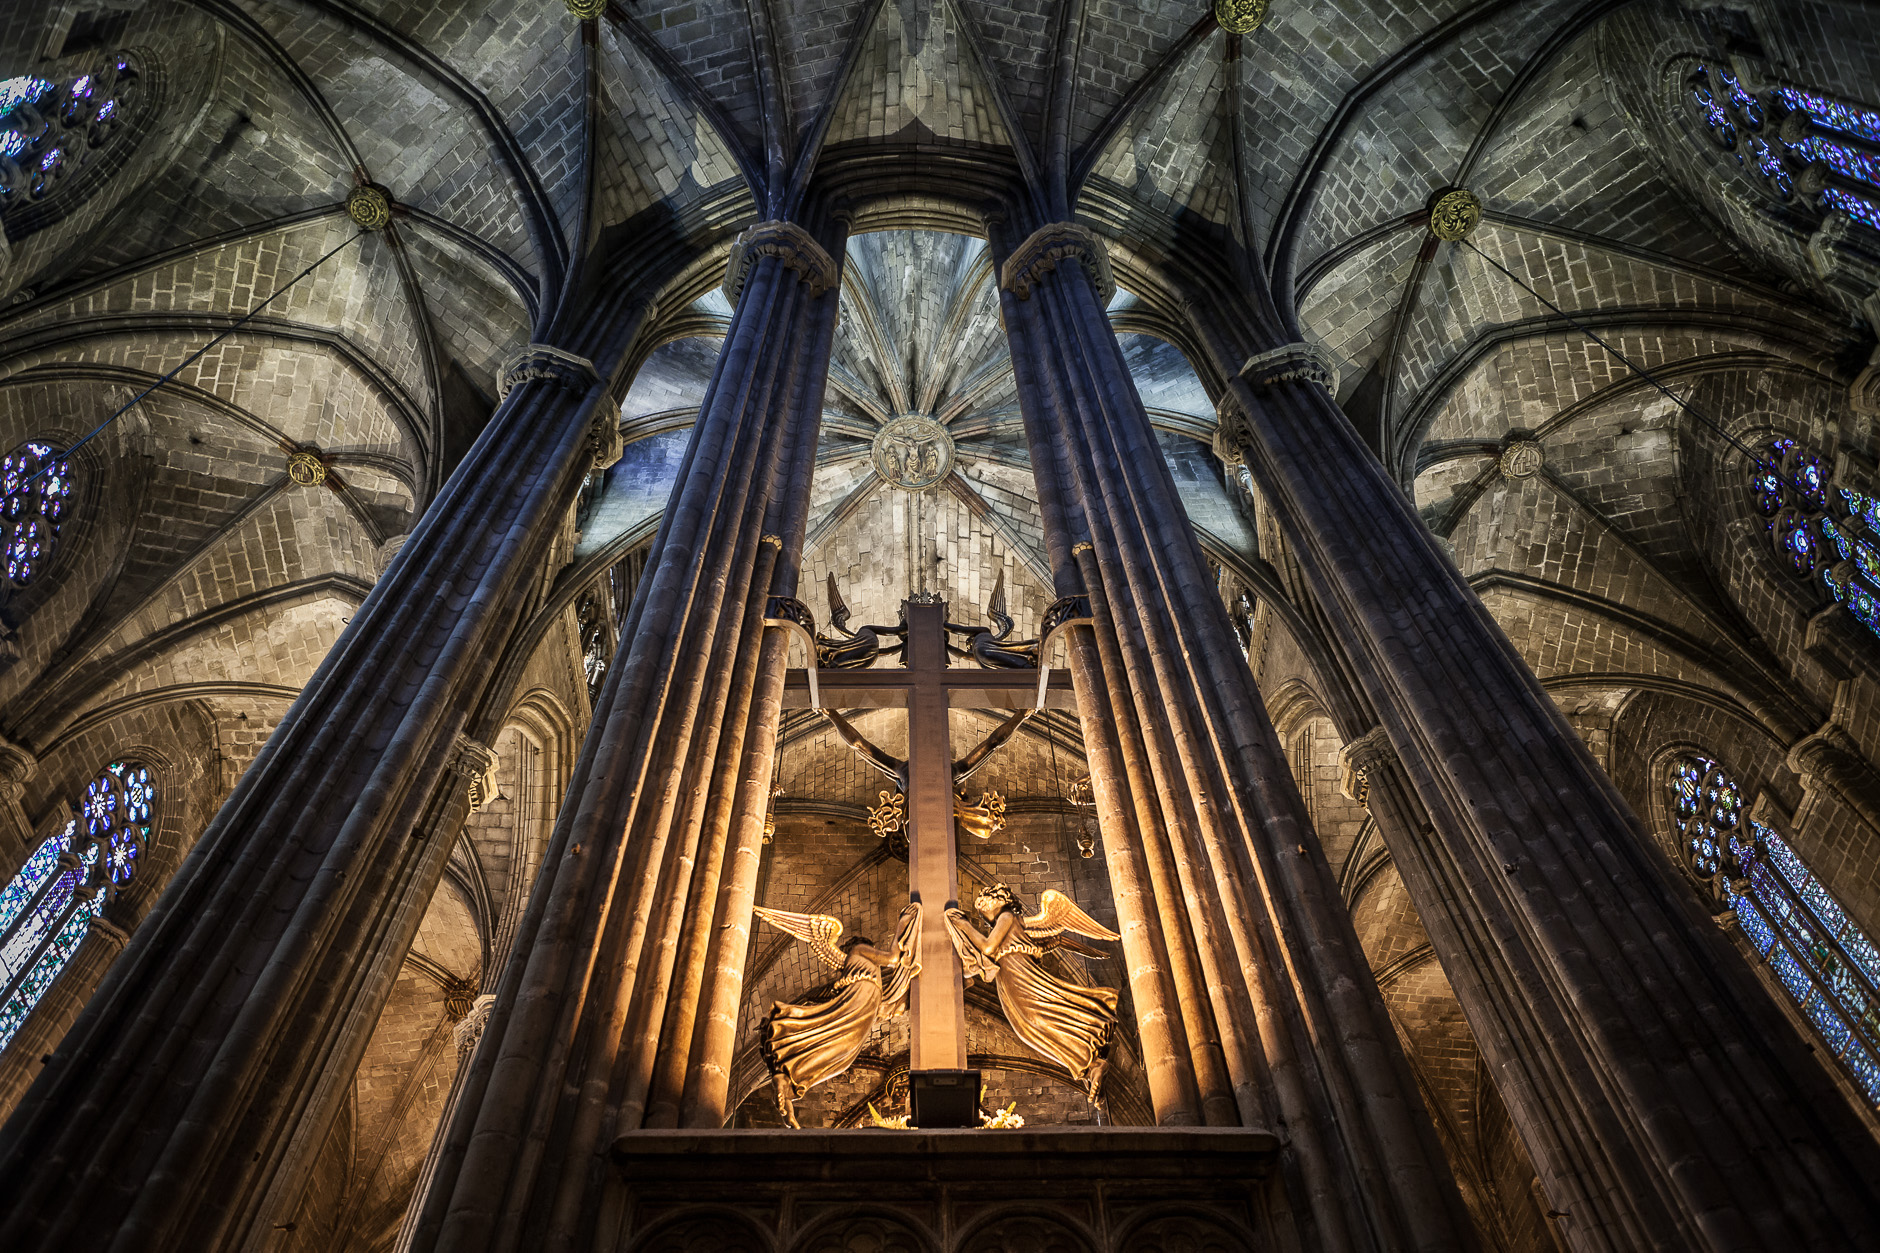 Image of the inside of the Barcelona Cathedral, showing the back of the altar, a cross and angels